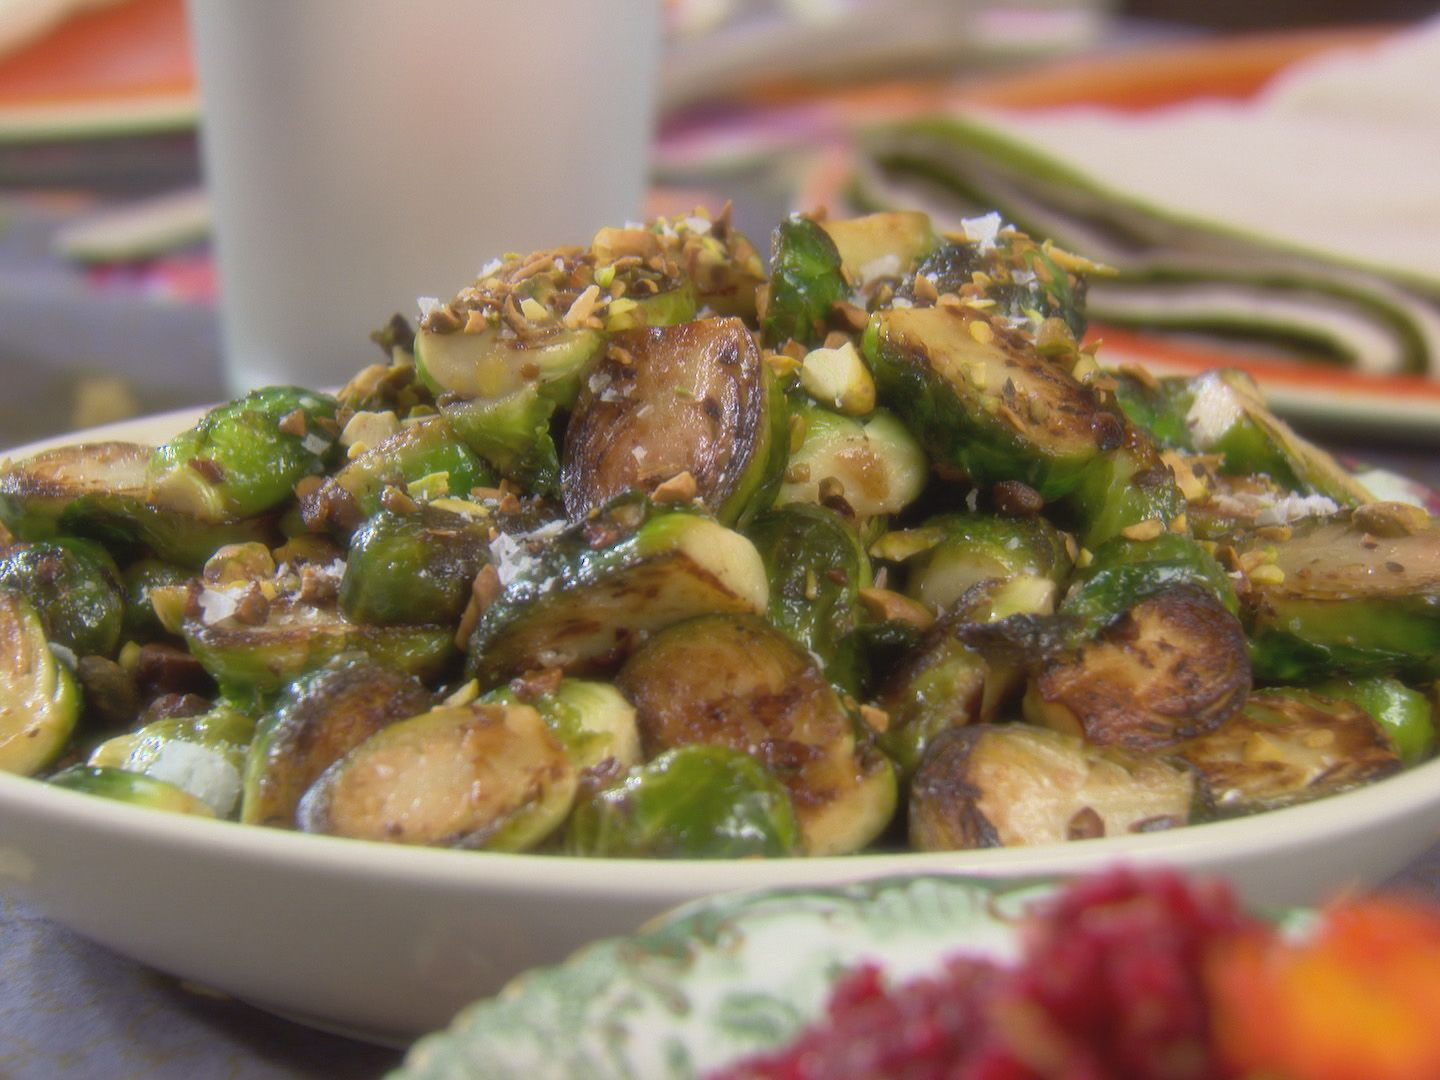 Brussel sprouts with pistachios recipe trisha yearwood food brussel sprouts with pistachios recipe trisha yearwood food network foodnetwork forumfinder Image collections